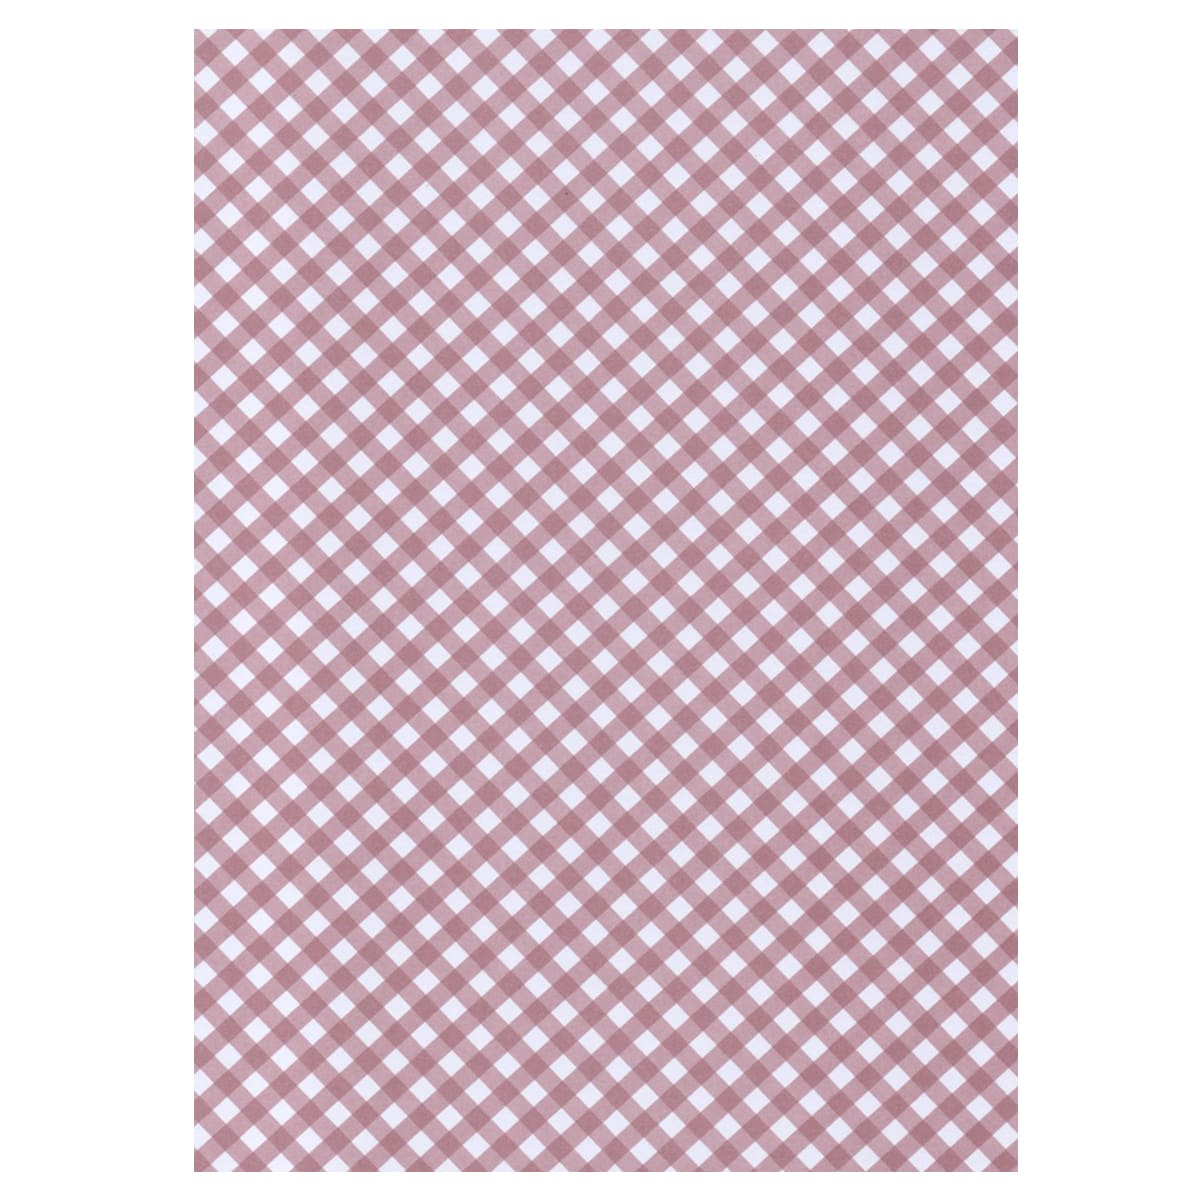 A4 DUSKY PINK BRILLIANCY CHECK GINGHAM CARD 300 GSM